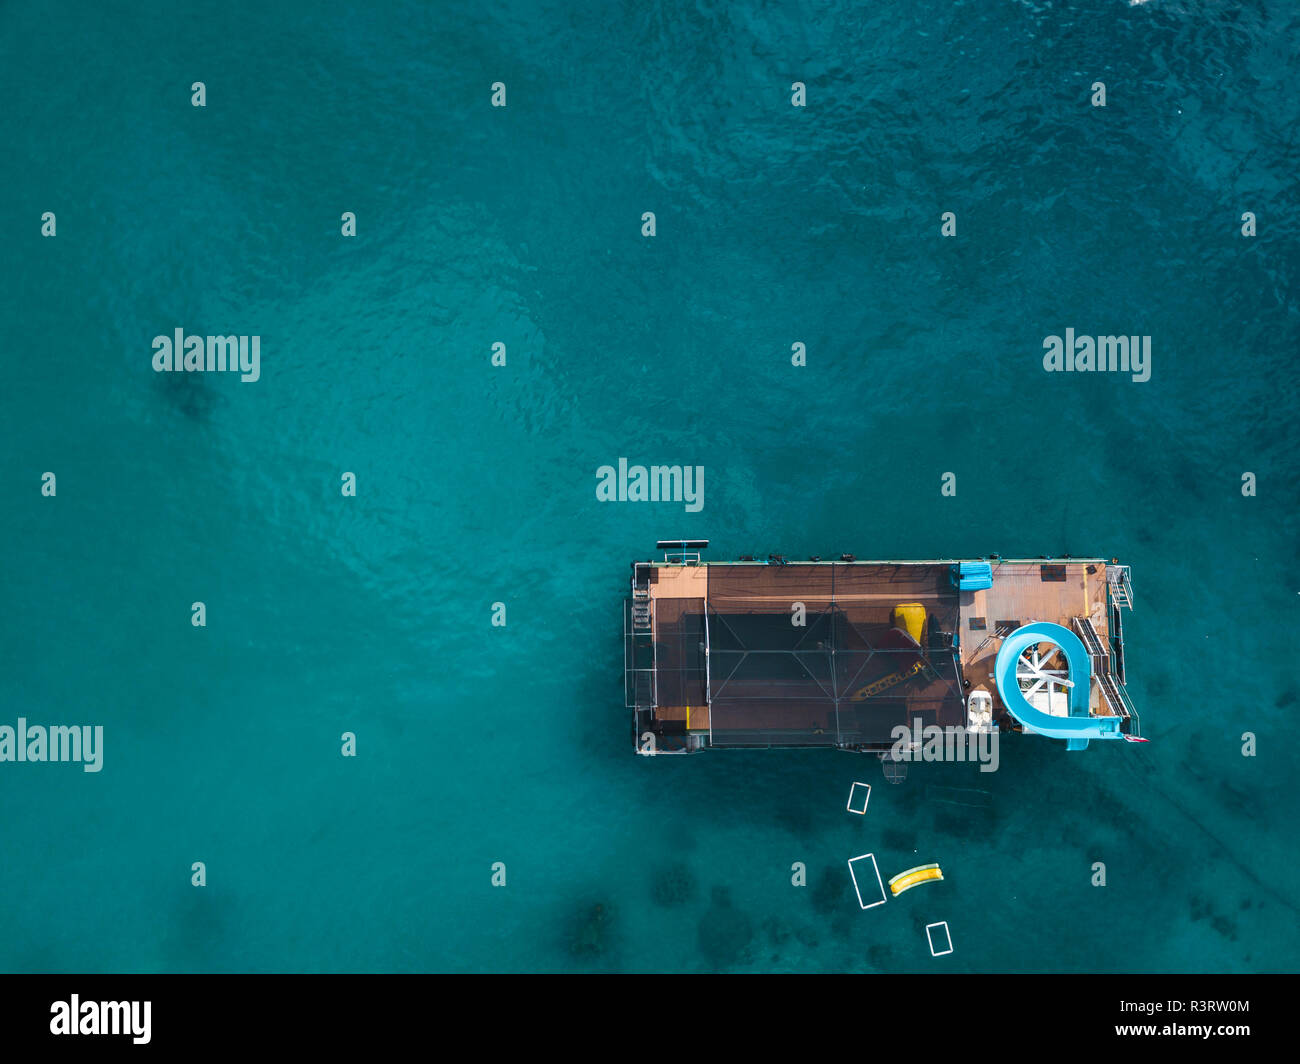 Indonesia, Bali, Aerial view of bathing platform - Stock Image